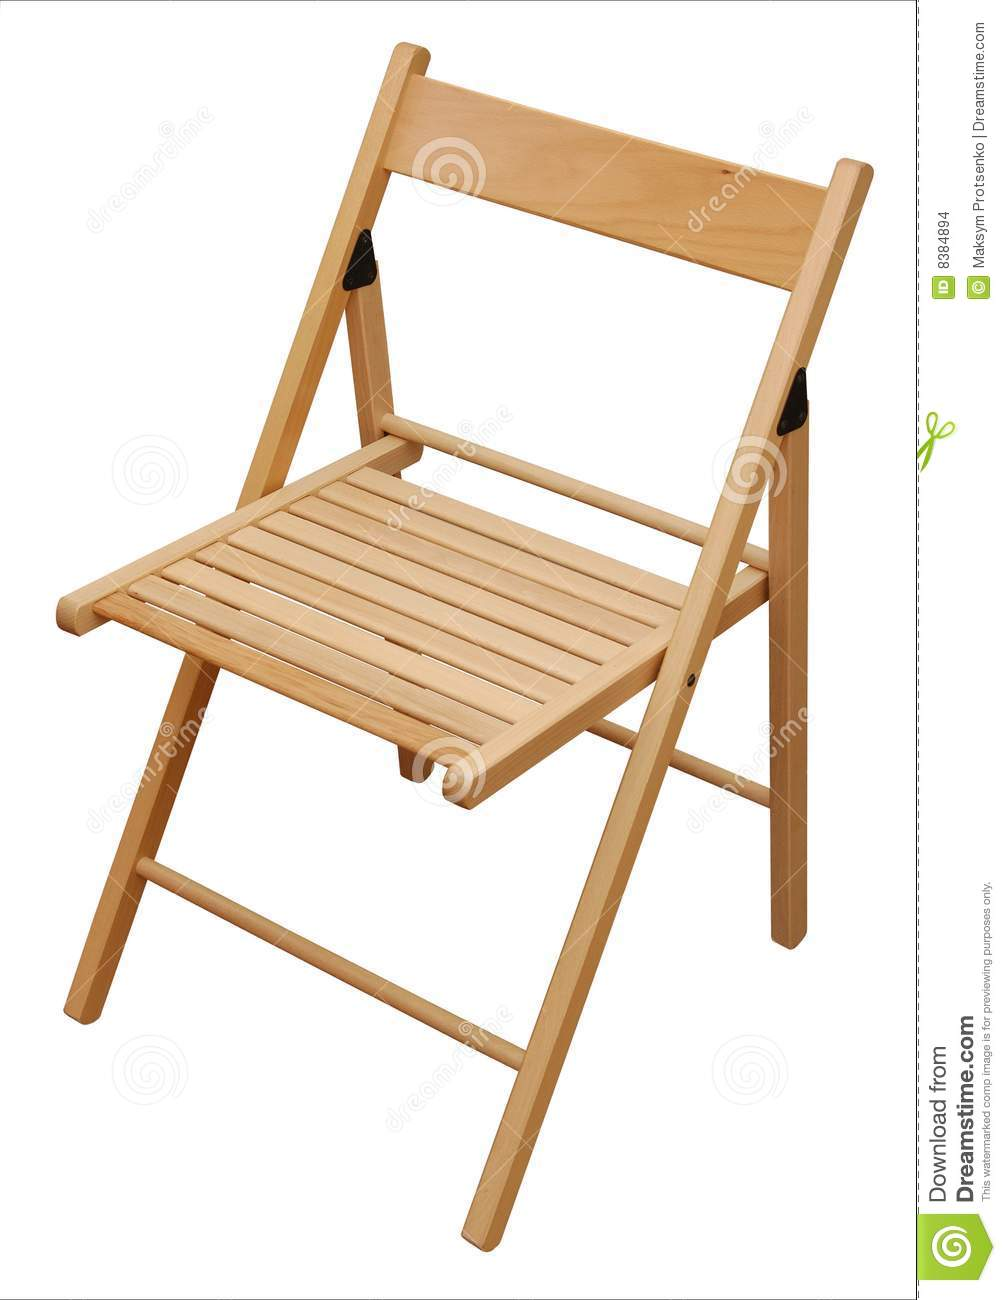 Wood folding chair outdoor - Chair Folding